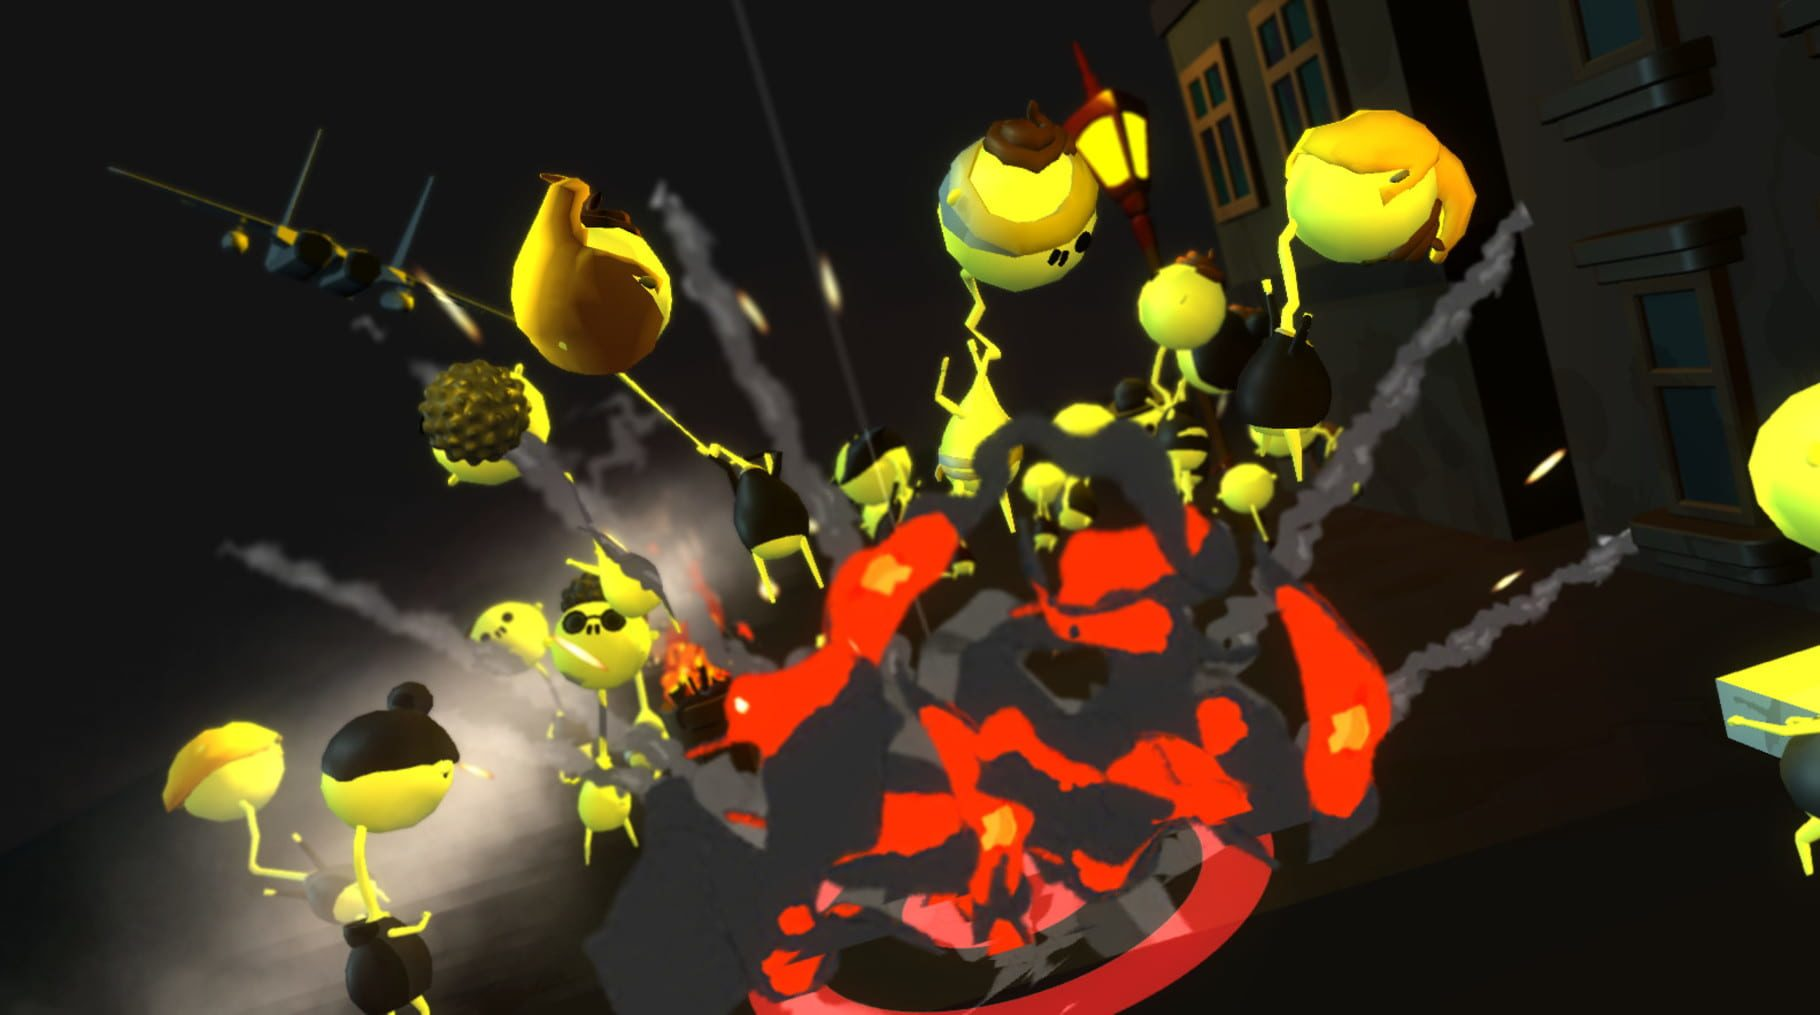 There's Poop In My Soup: Pooping with Friends Steam Key GLOBAL